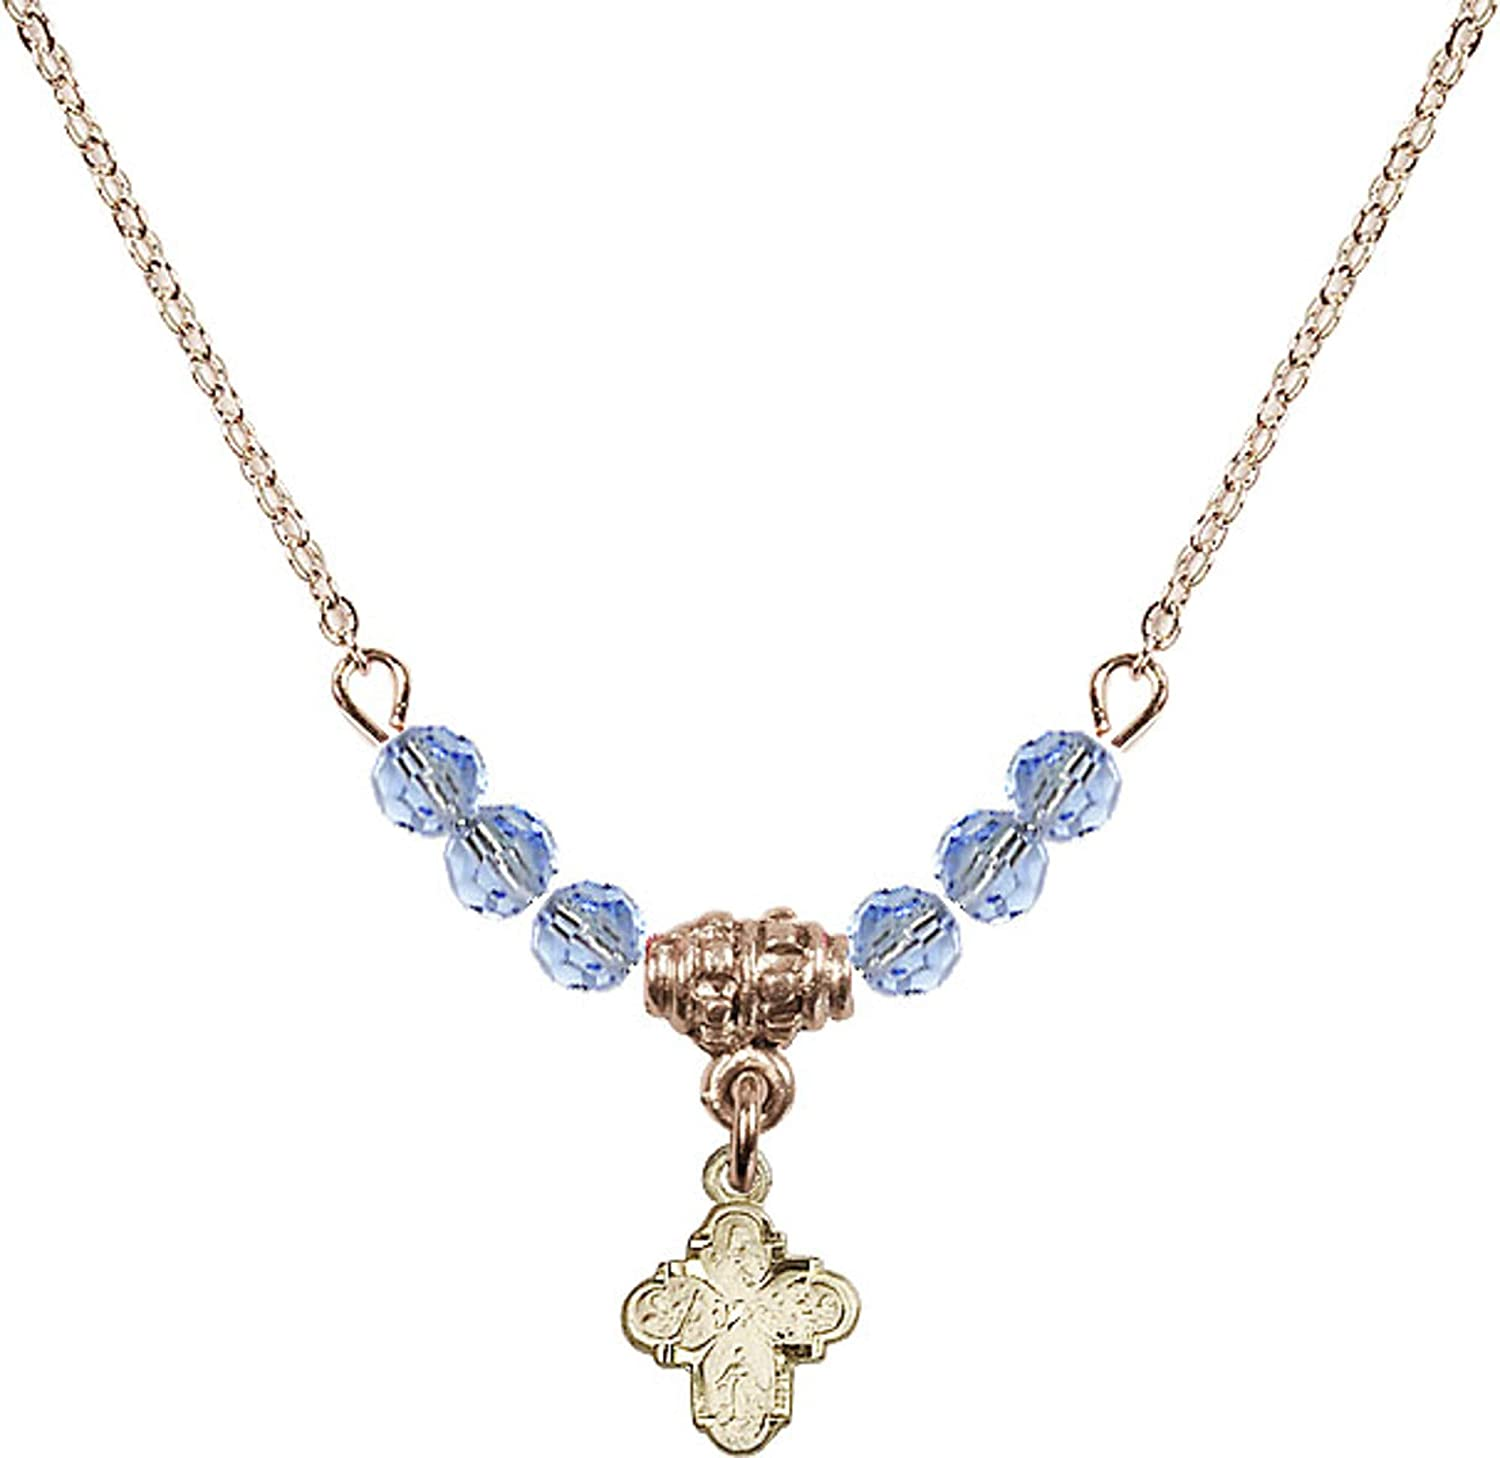 Bonyak Jewelry 18 Inch Hamilton Gold Plated Necklace w// 4mm Light Blue September Birth Month Stone Beads and 4-Way Charm